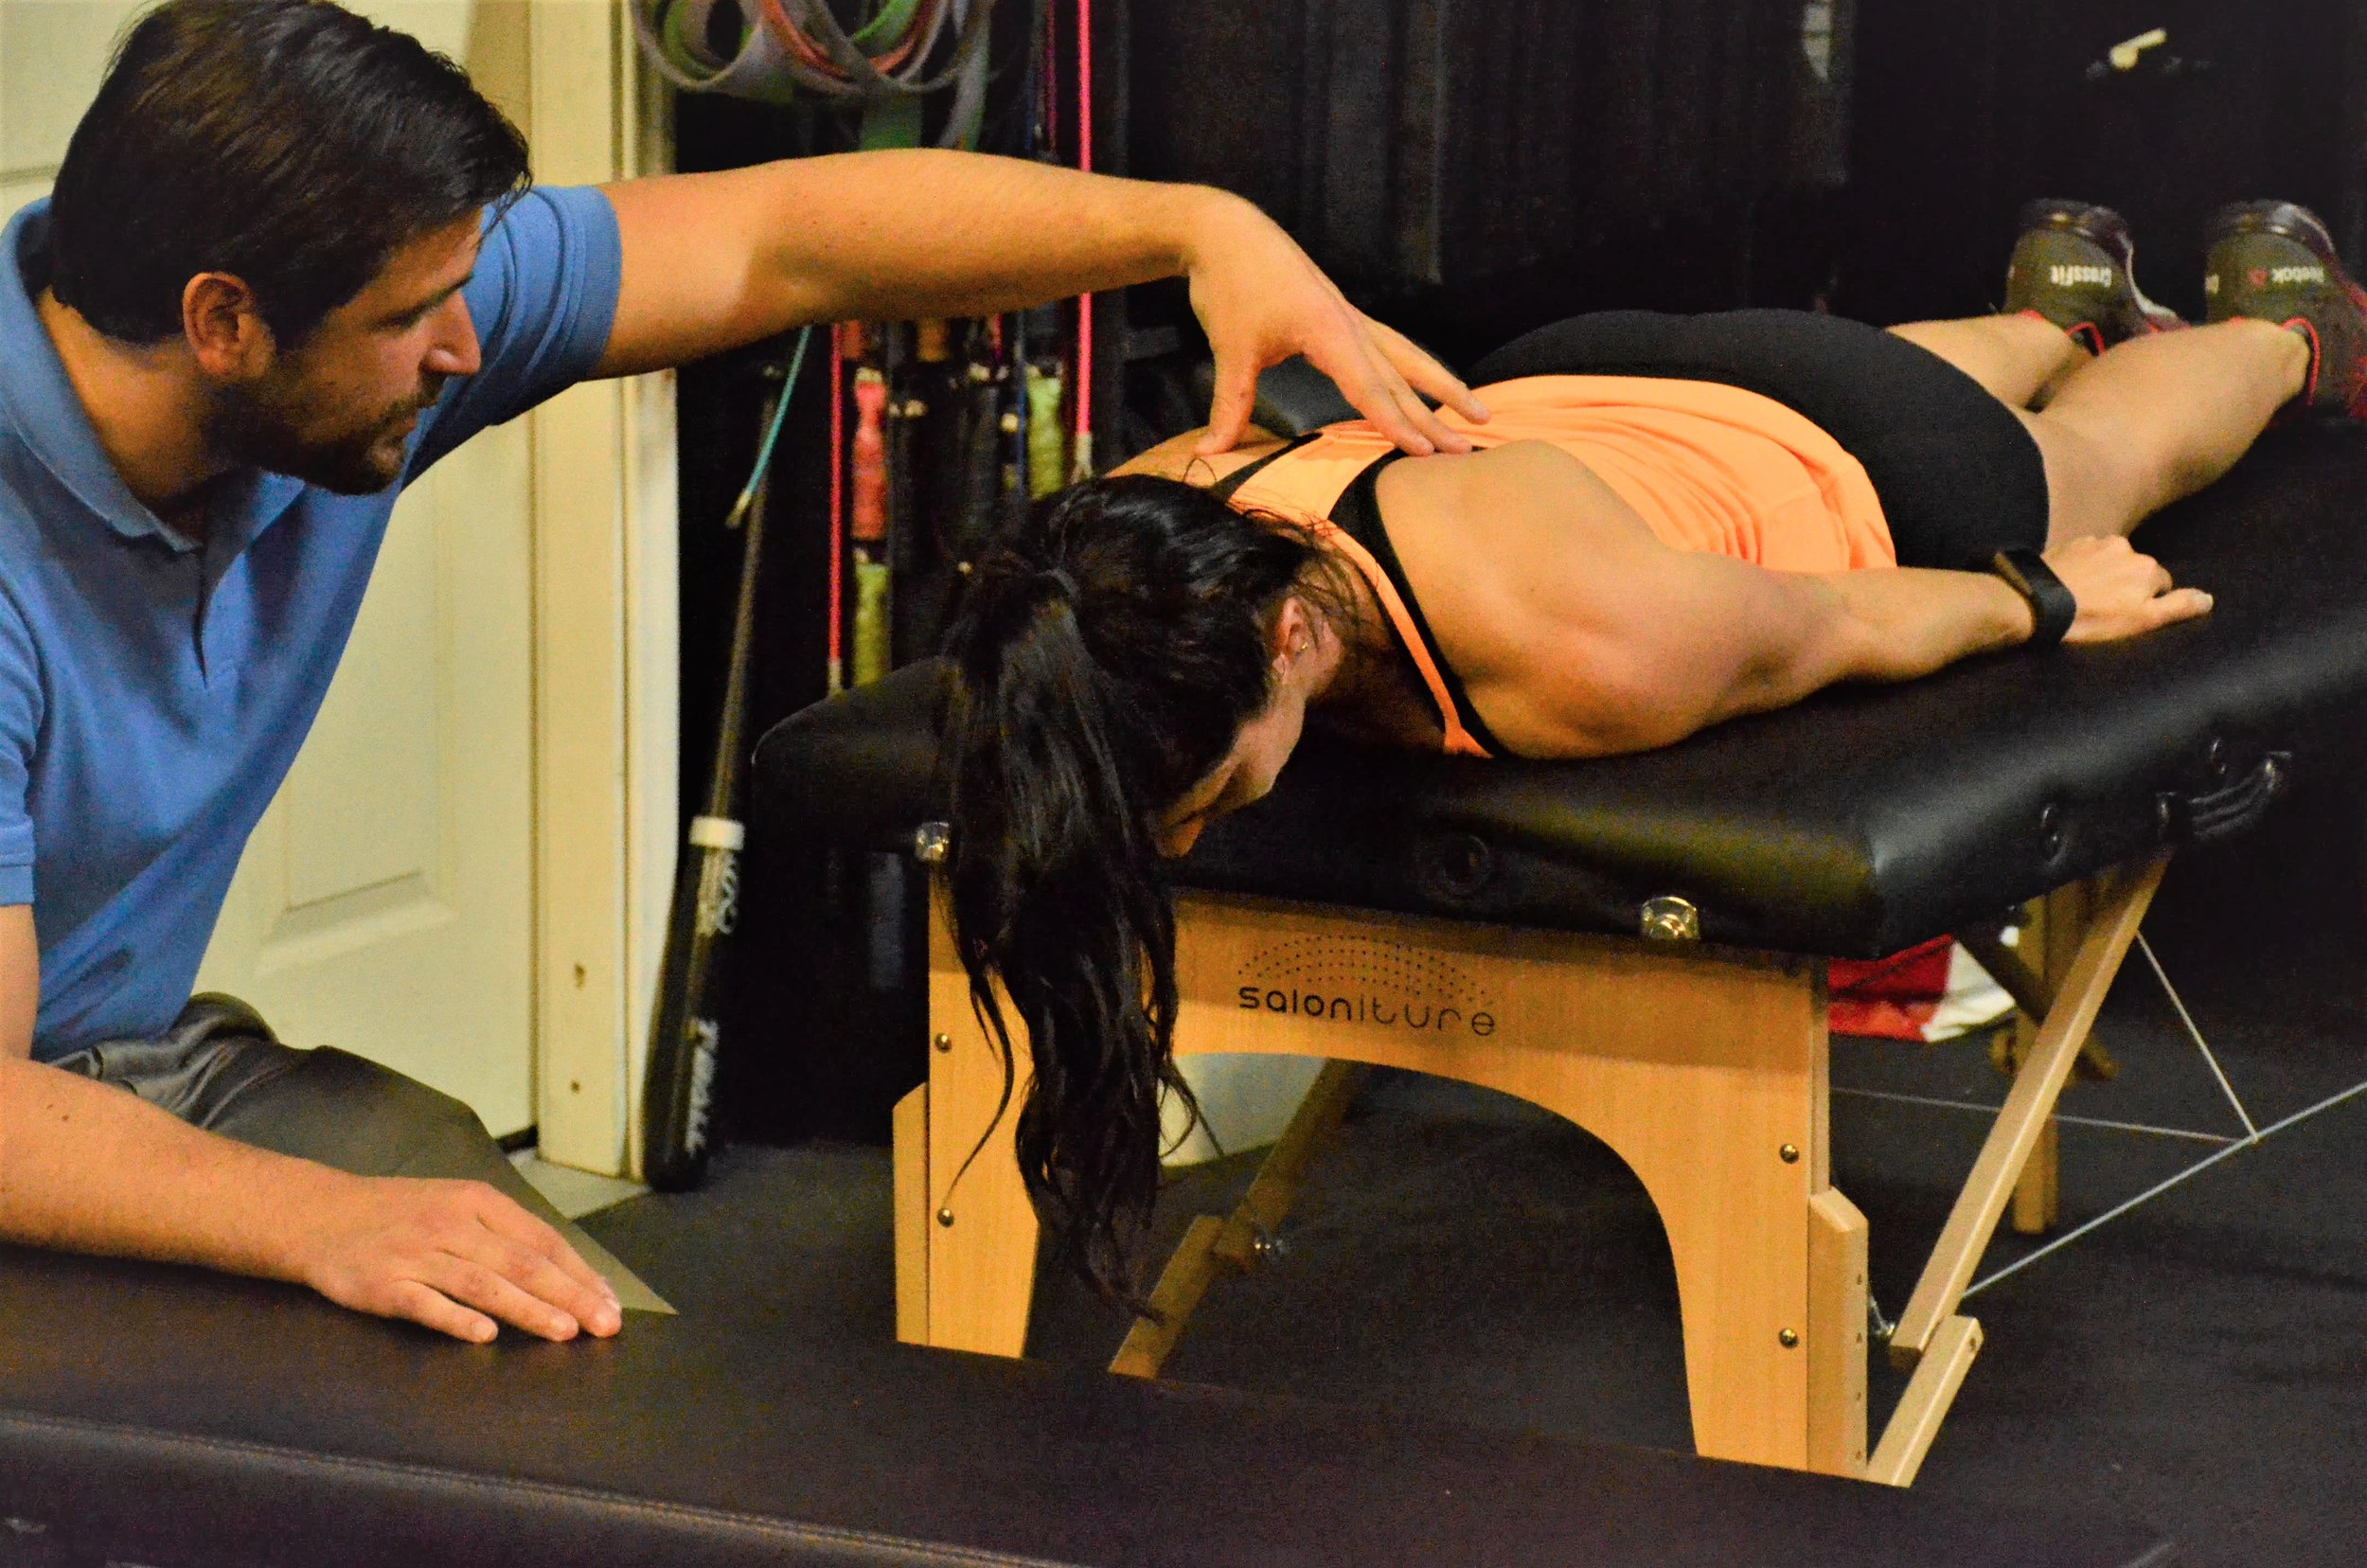 Mobile Physical Therapy In A Crossfit Gym